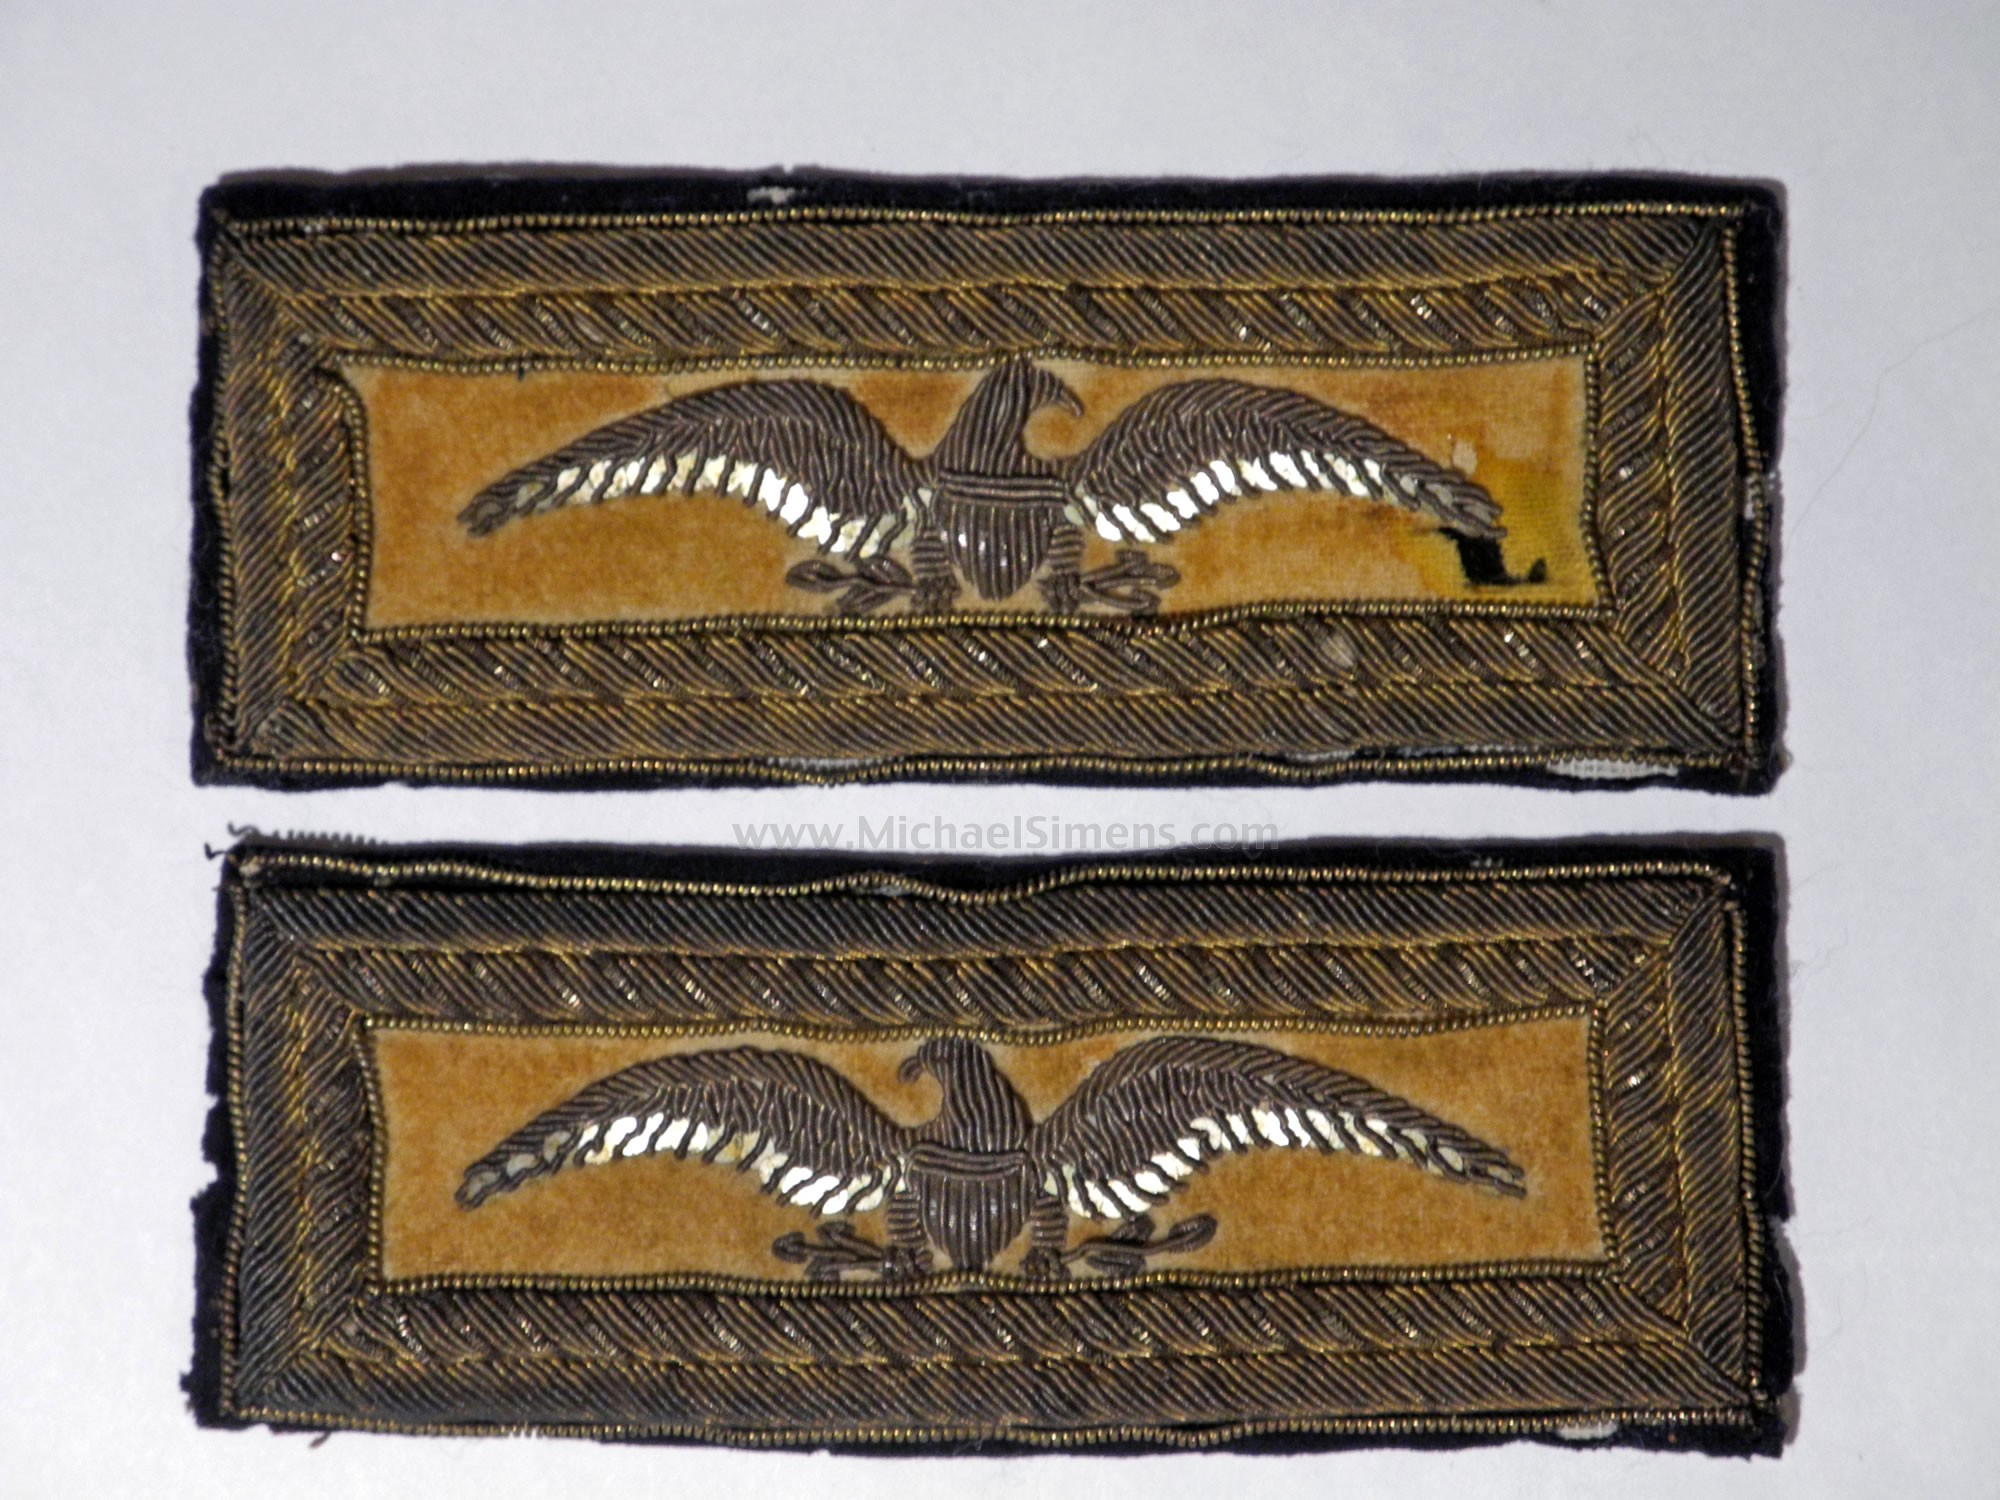 SHOULDER STRAPS FOR CIVIL WAR CAVALRY COLONEL - CIVIL WAR ARTIFACTS